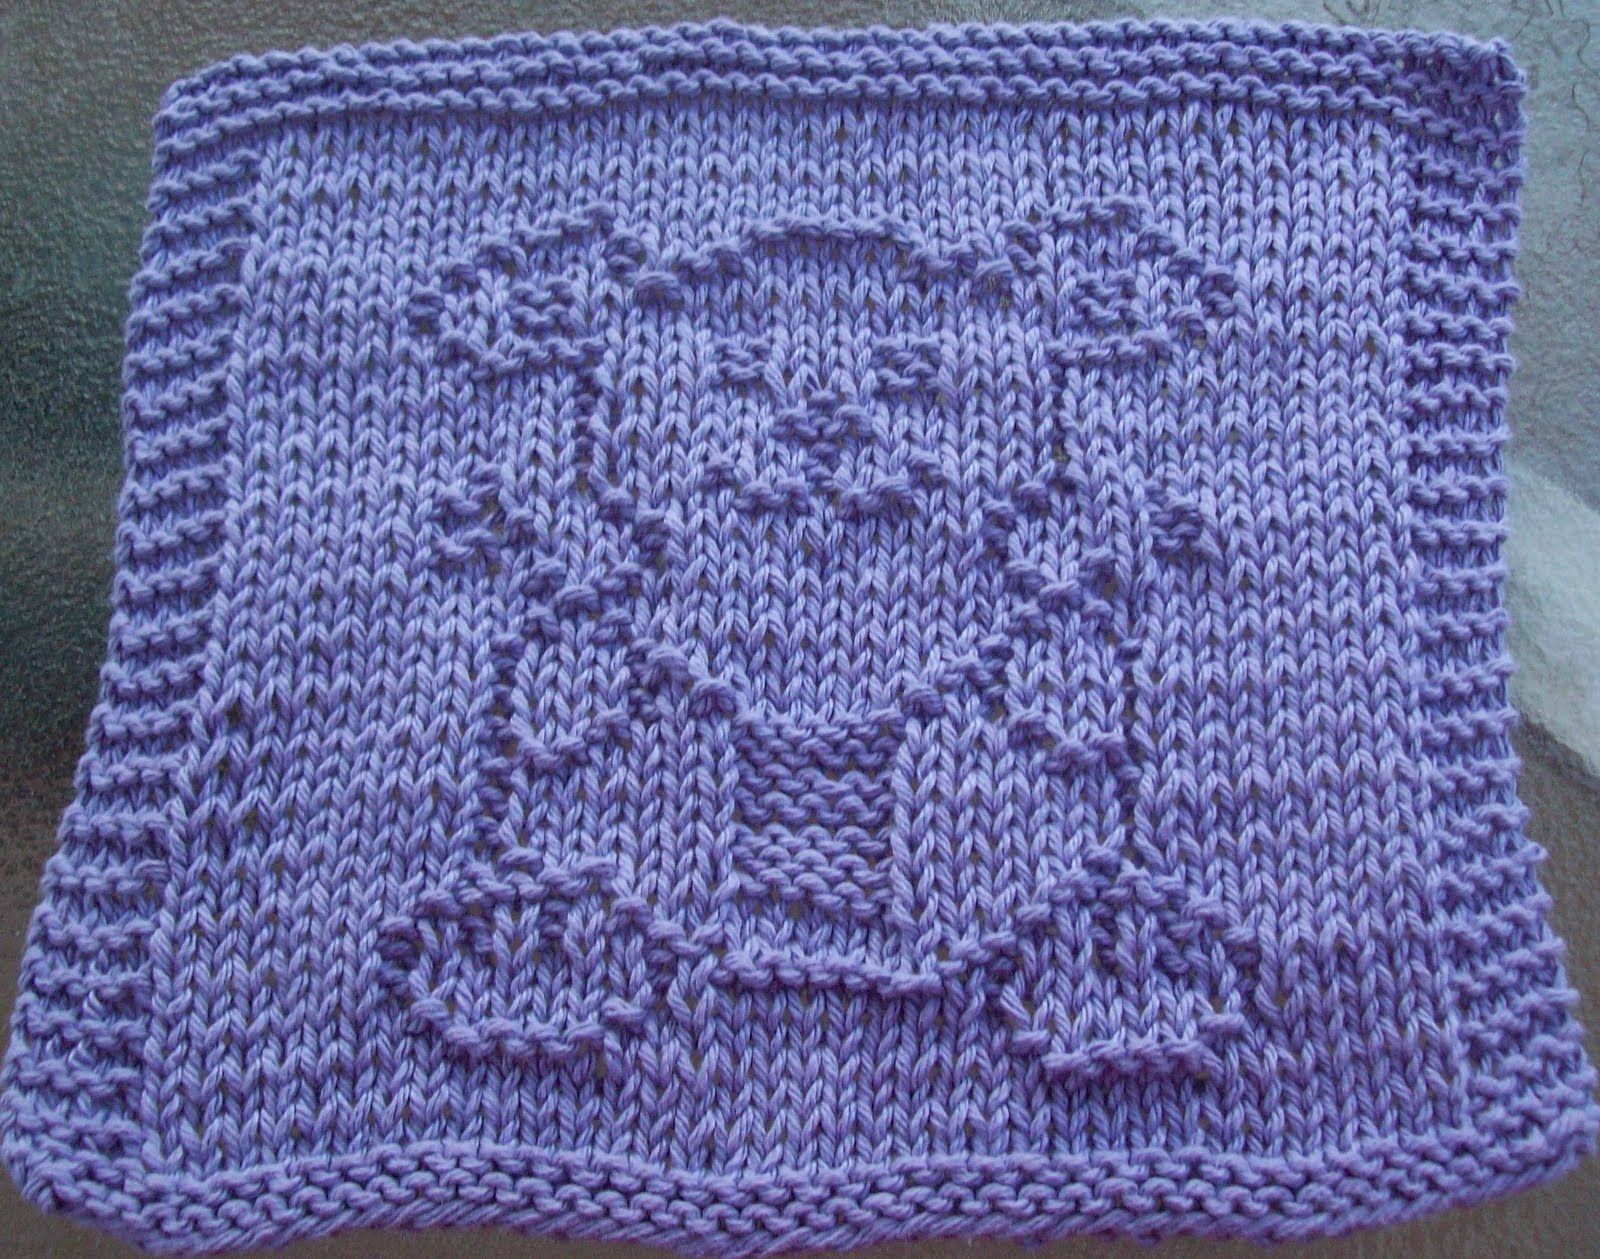 Knitted Dishcloth Patterns : DigKnitty Designs: Bear Knitting Knit Dishcloth Pattern